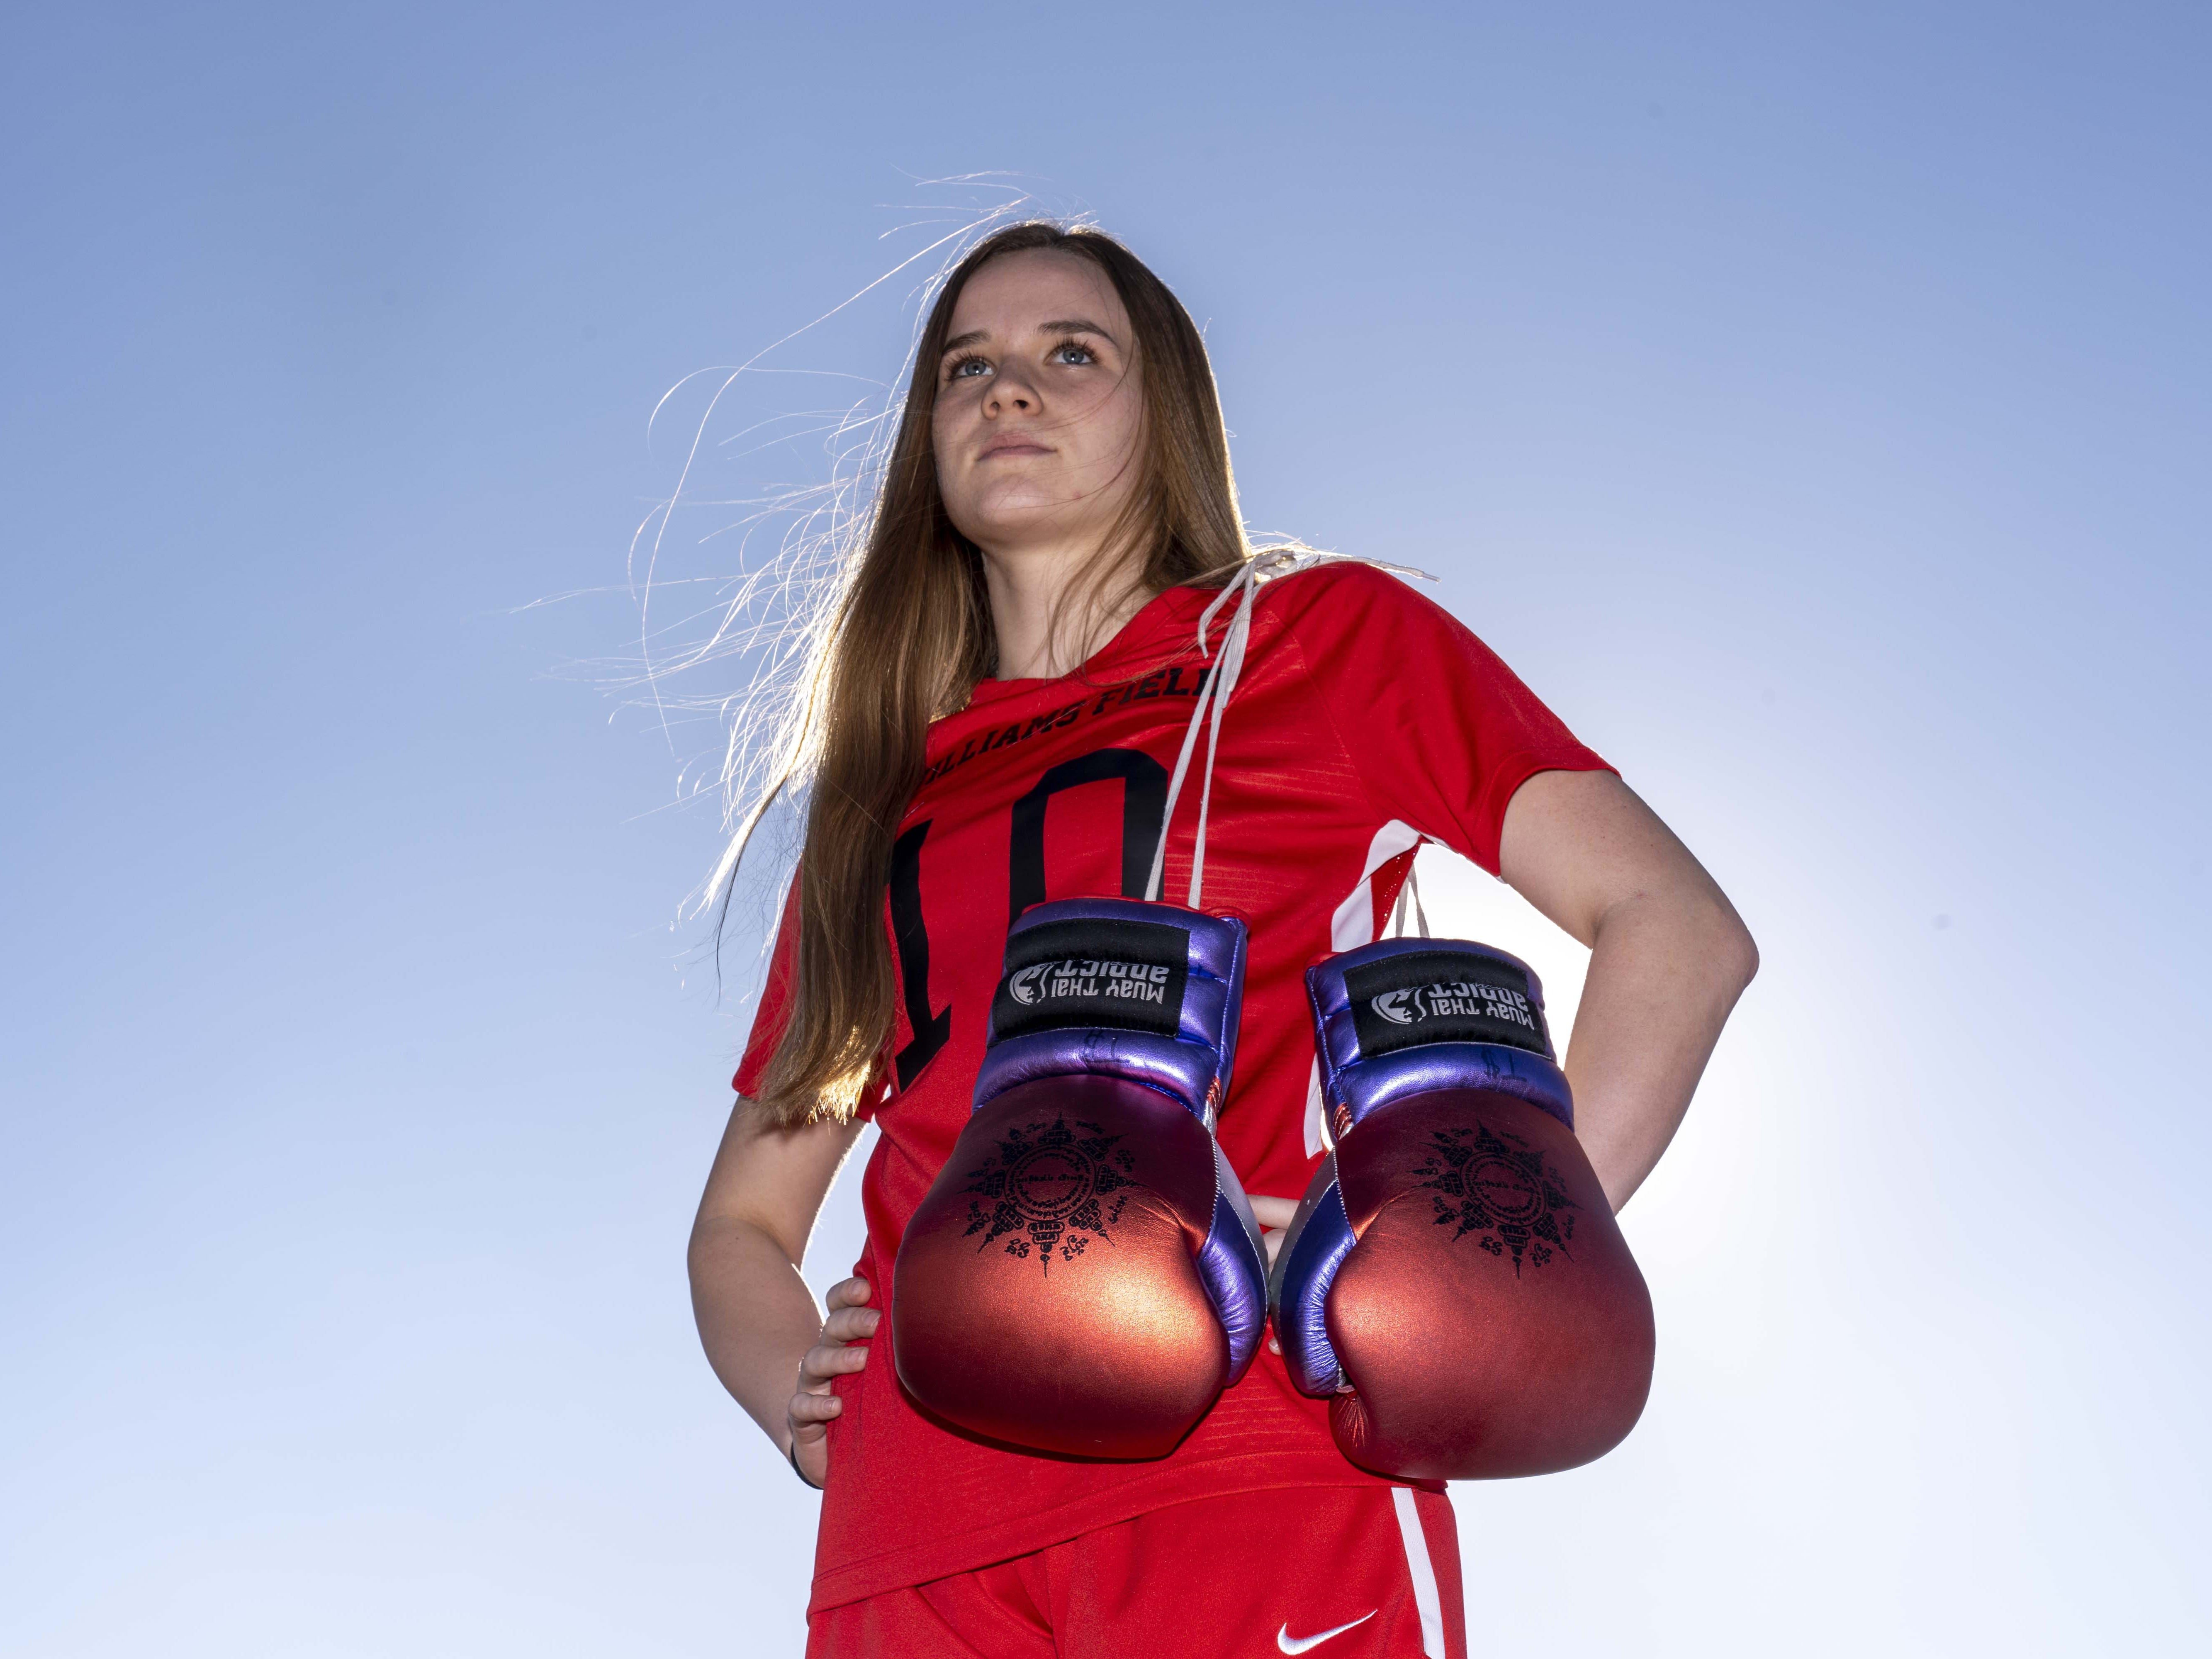 Tierra Brandt is a top soccer player but is also regarded as one of the nation's  best female boxers. She's also considered one of the top Muay Thai fighter in the world for her age.